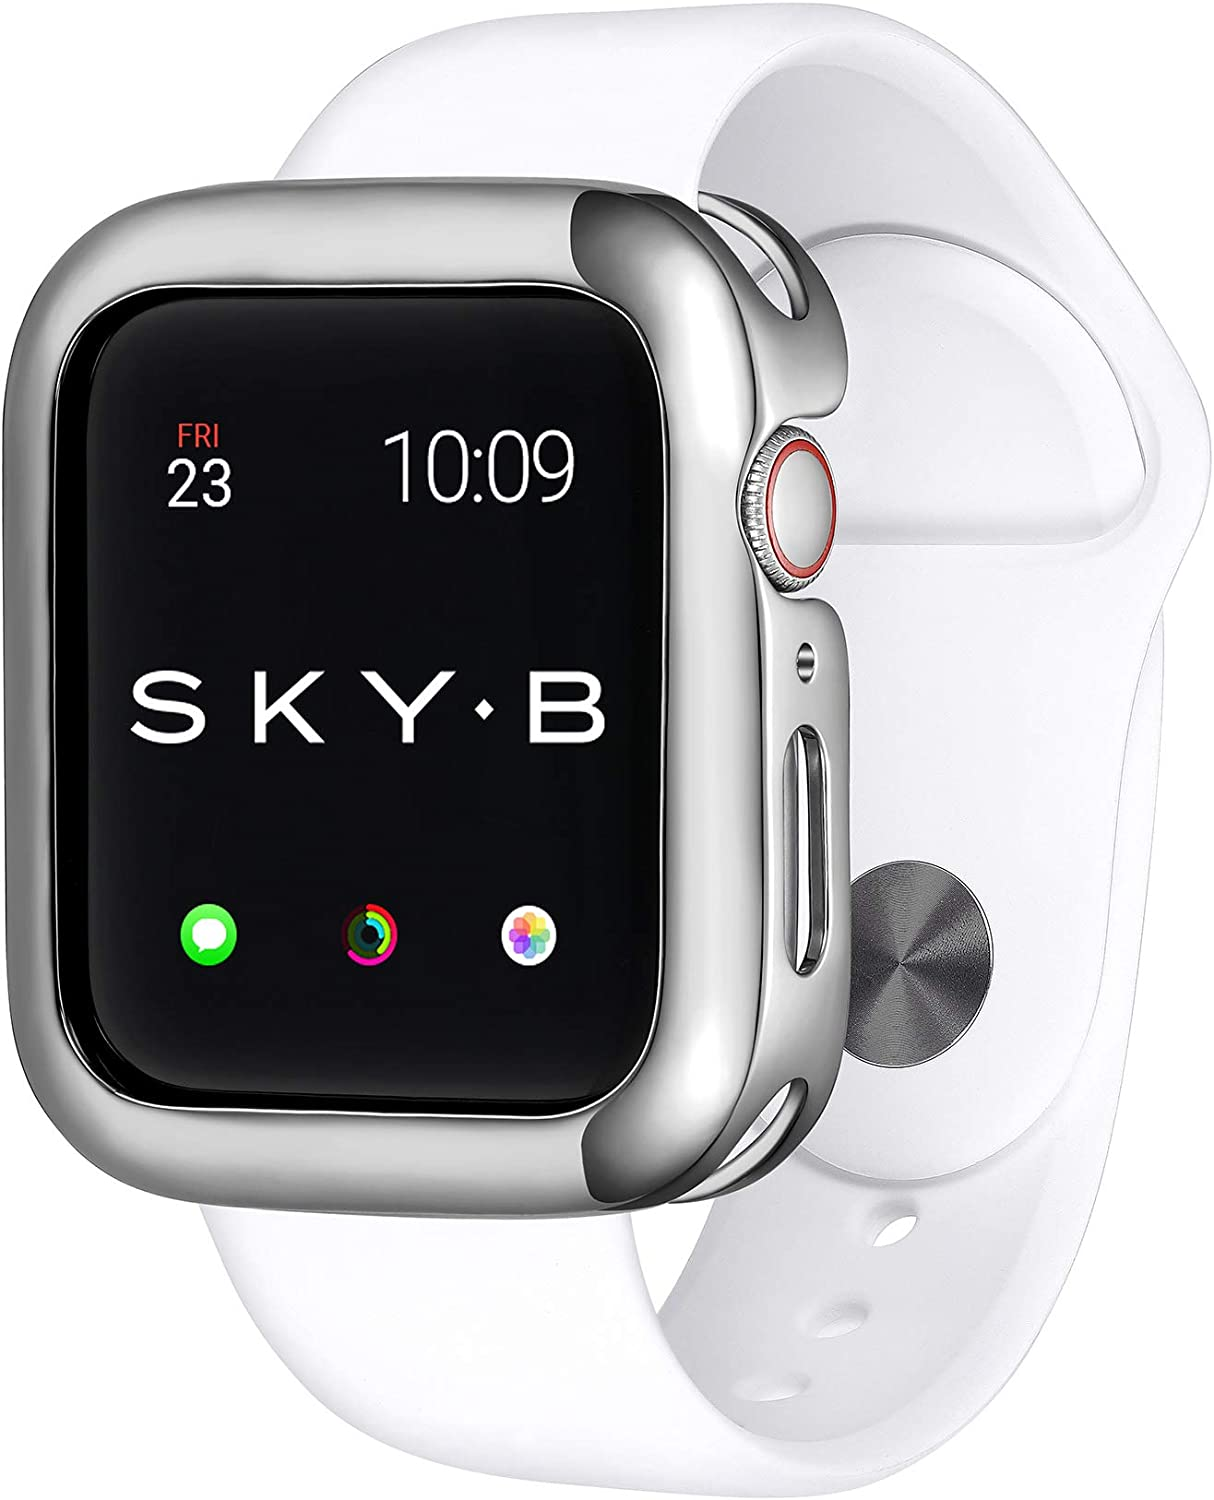 SKYB Minimalist Silver Very popular Protective Jewelry S Apple for Case New Free Shipping Watch